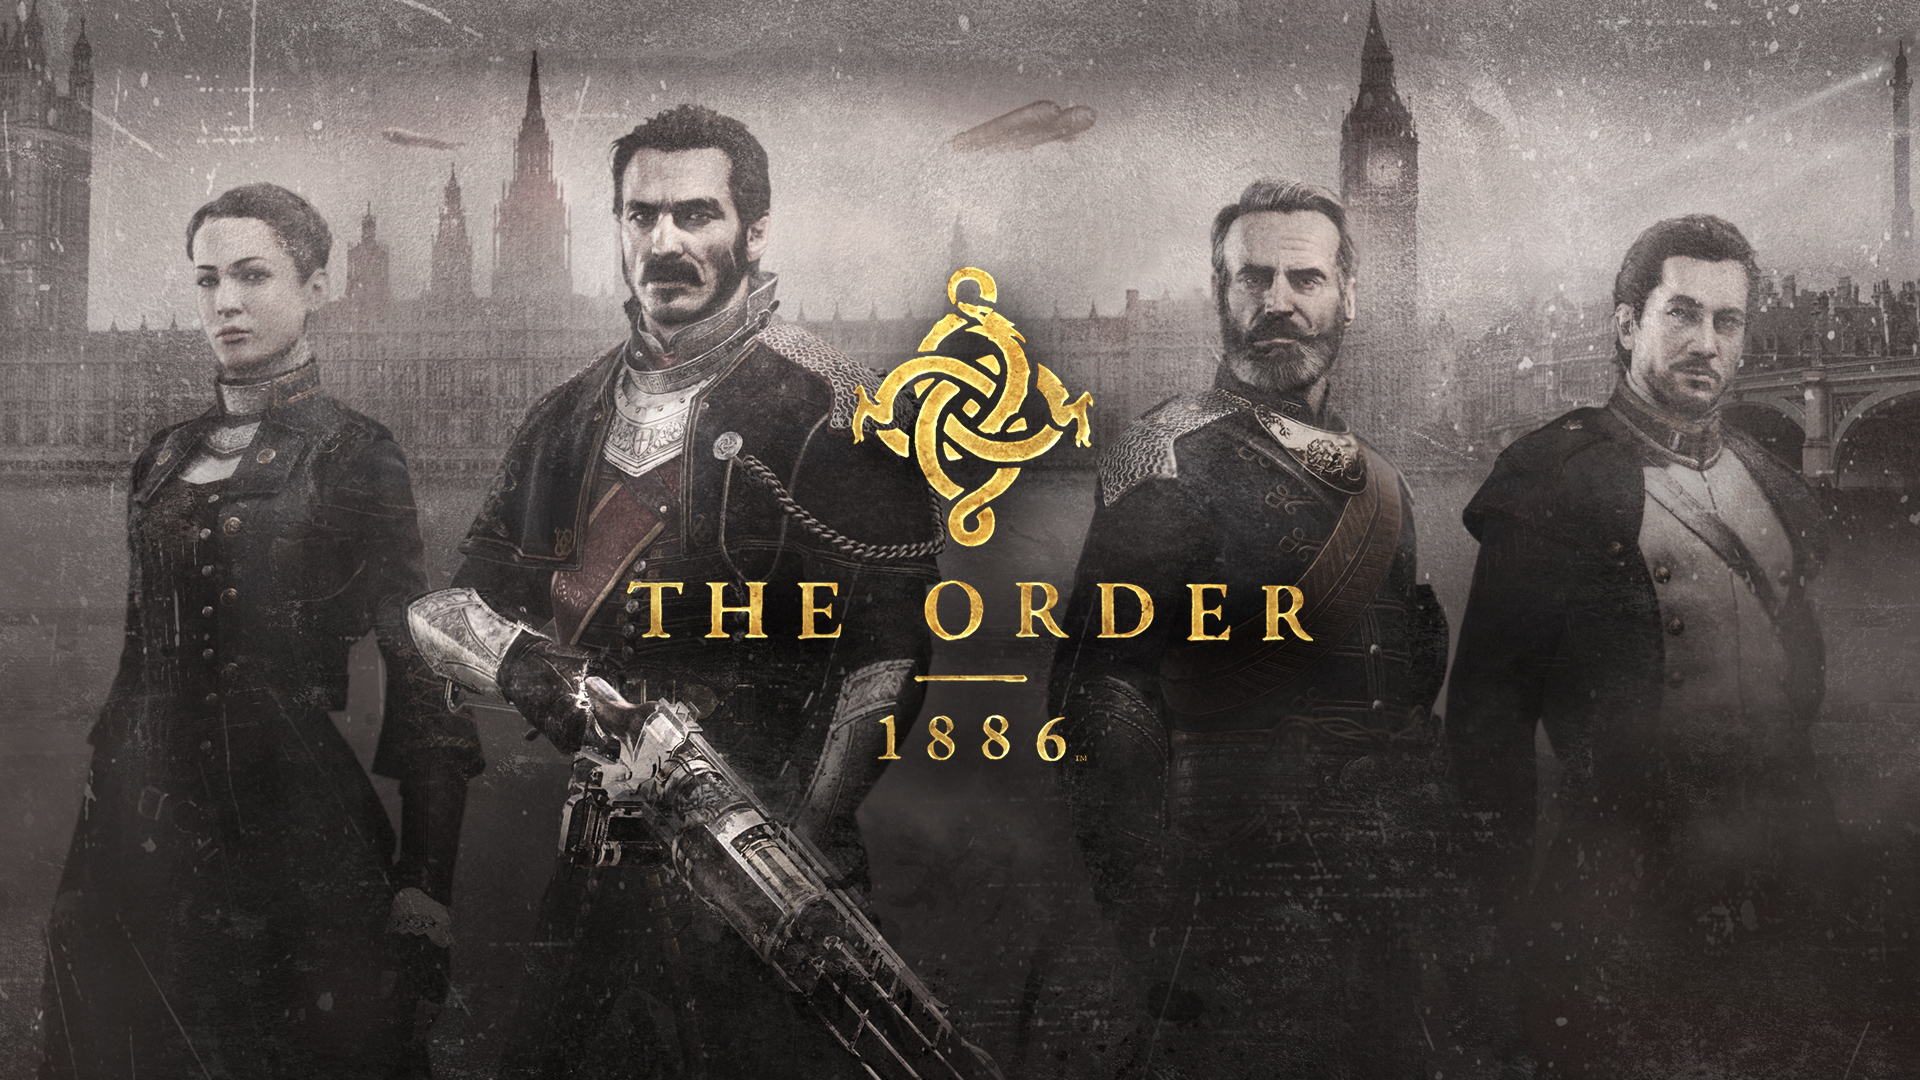 the-order-1886-wallpaper-27265-27982-hd-wallpapers